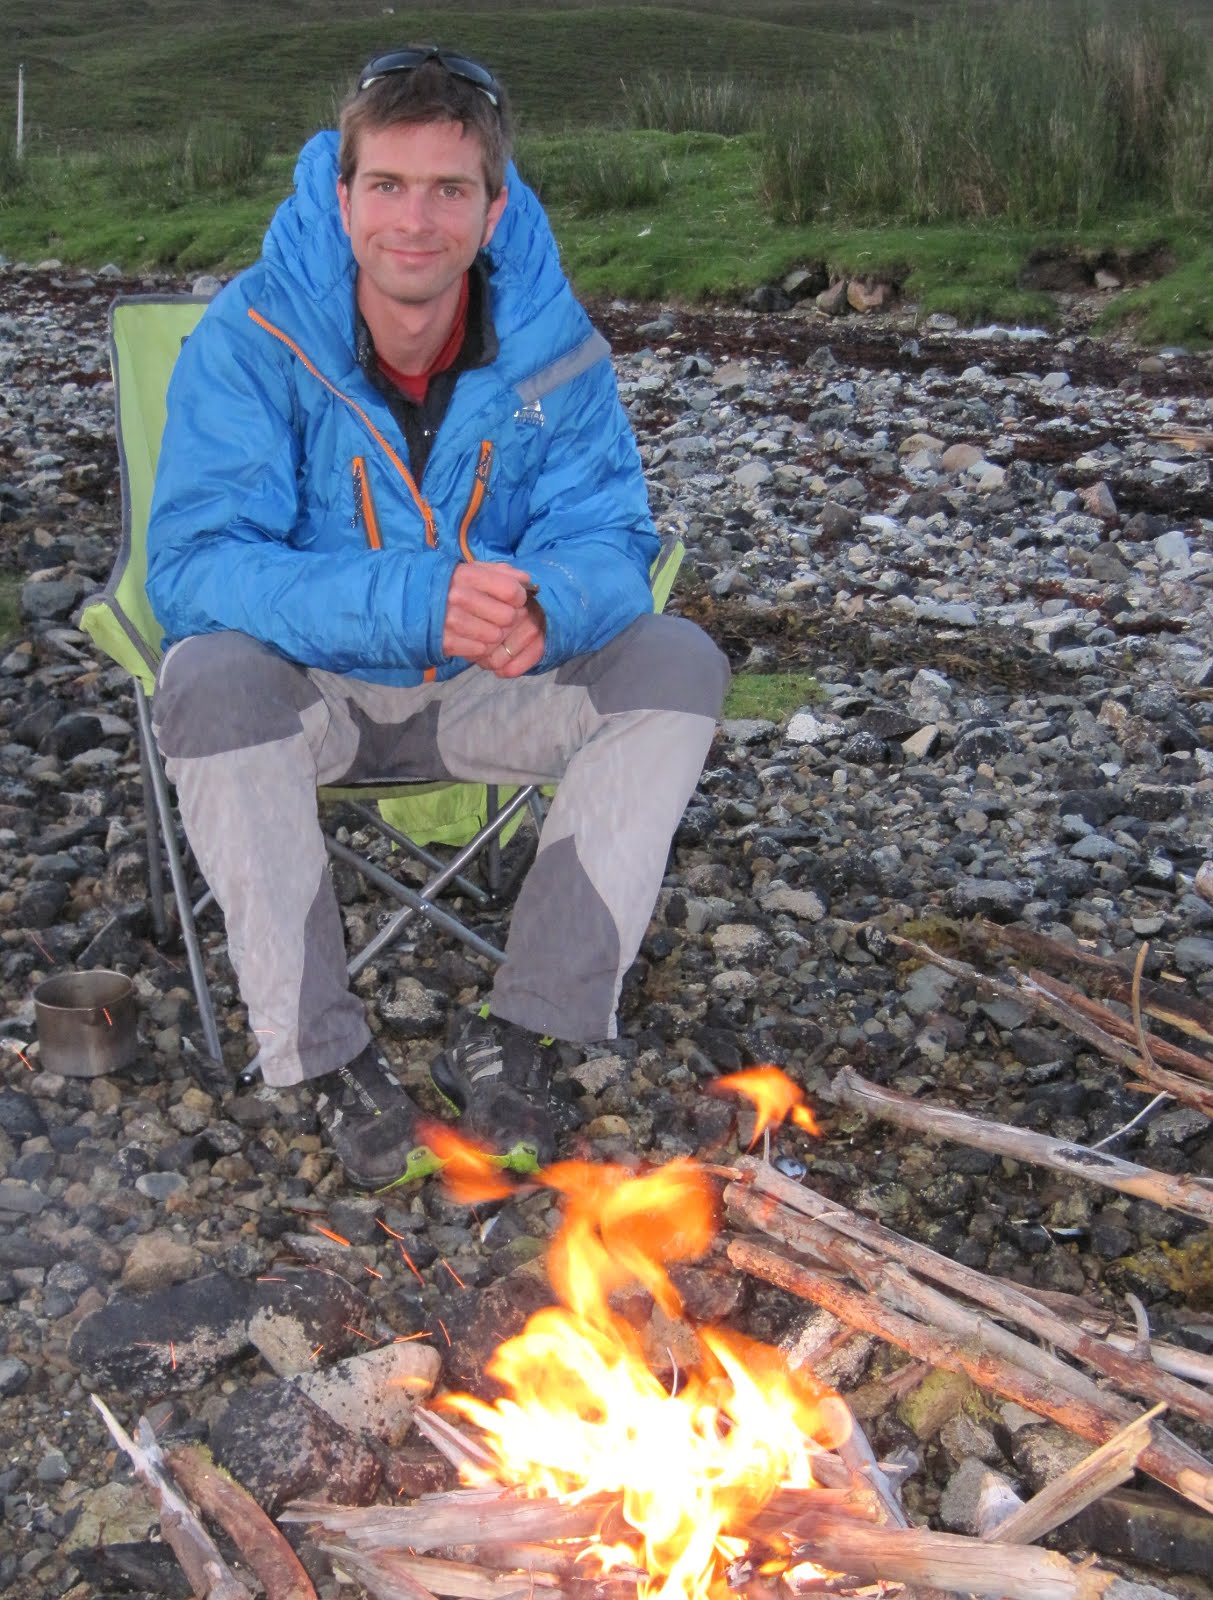 Mr O. Rees (Head of Outdoor Education)